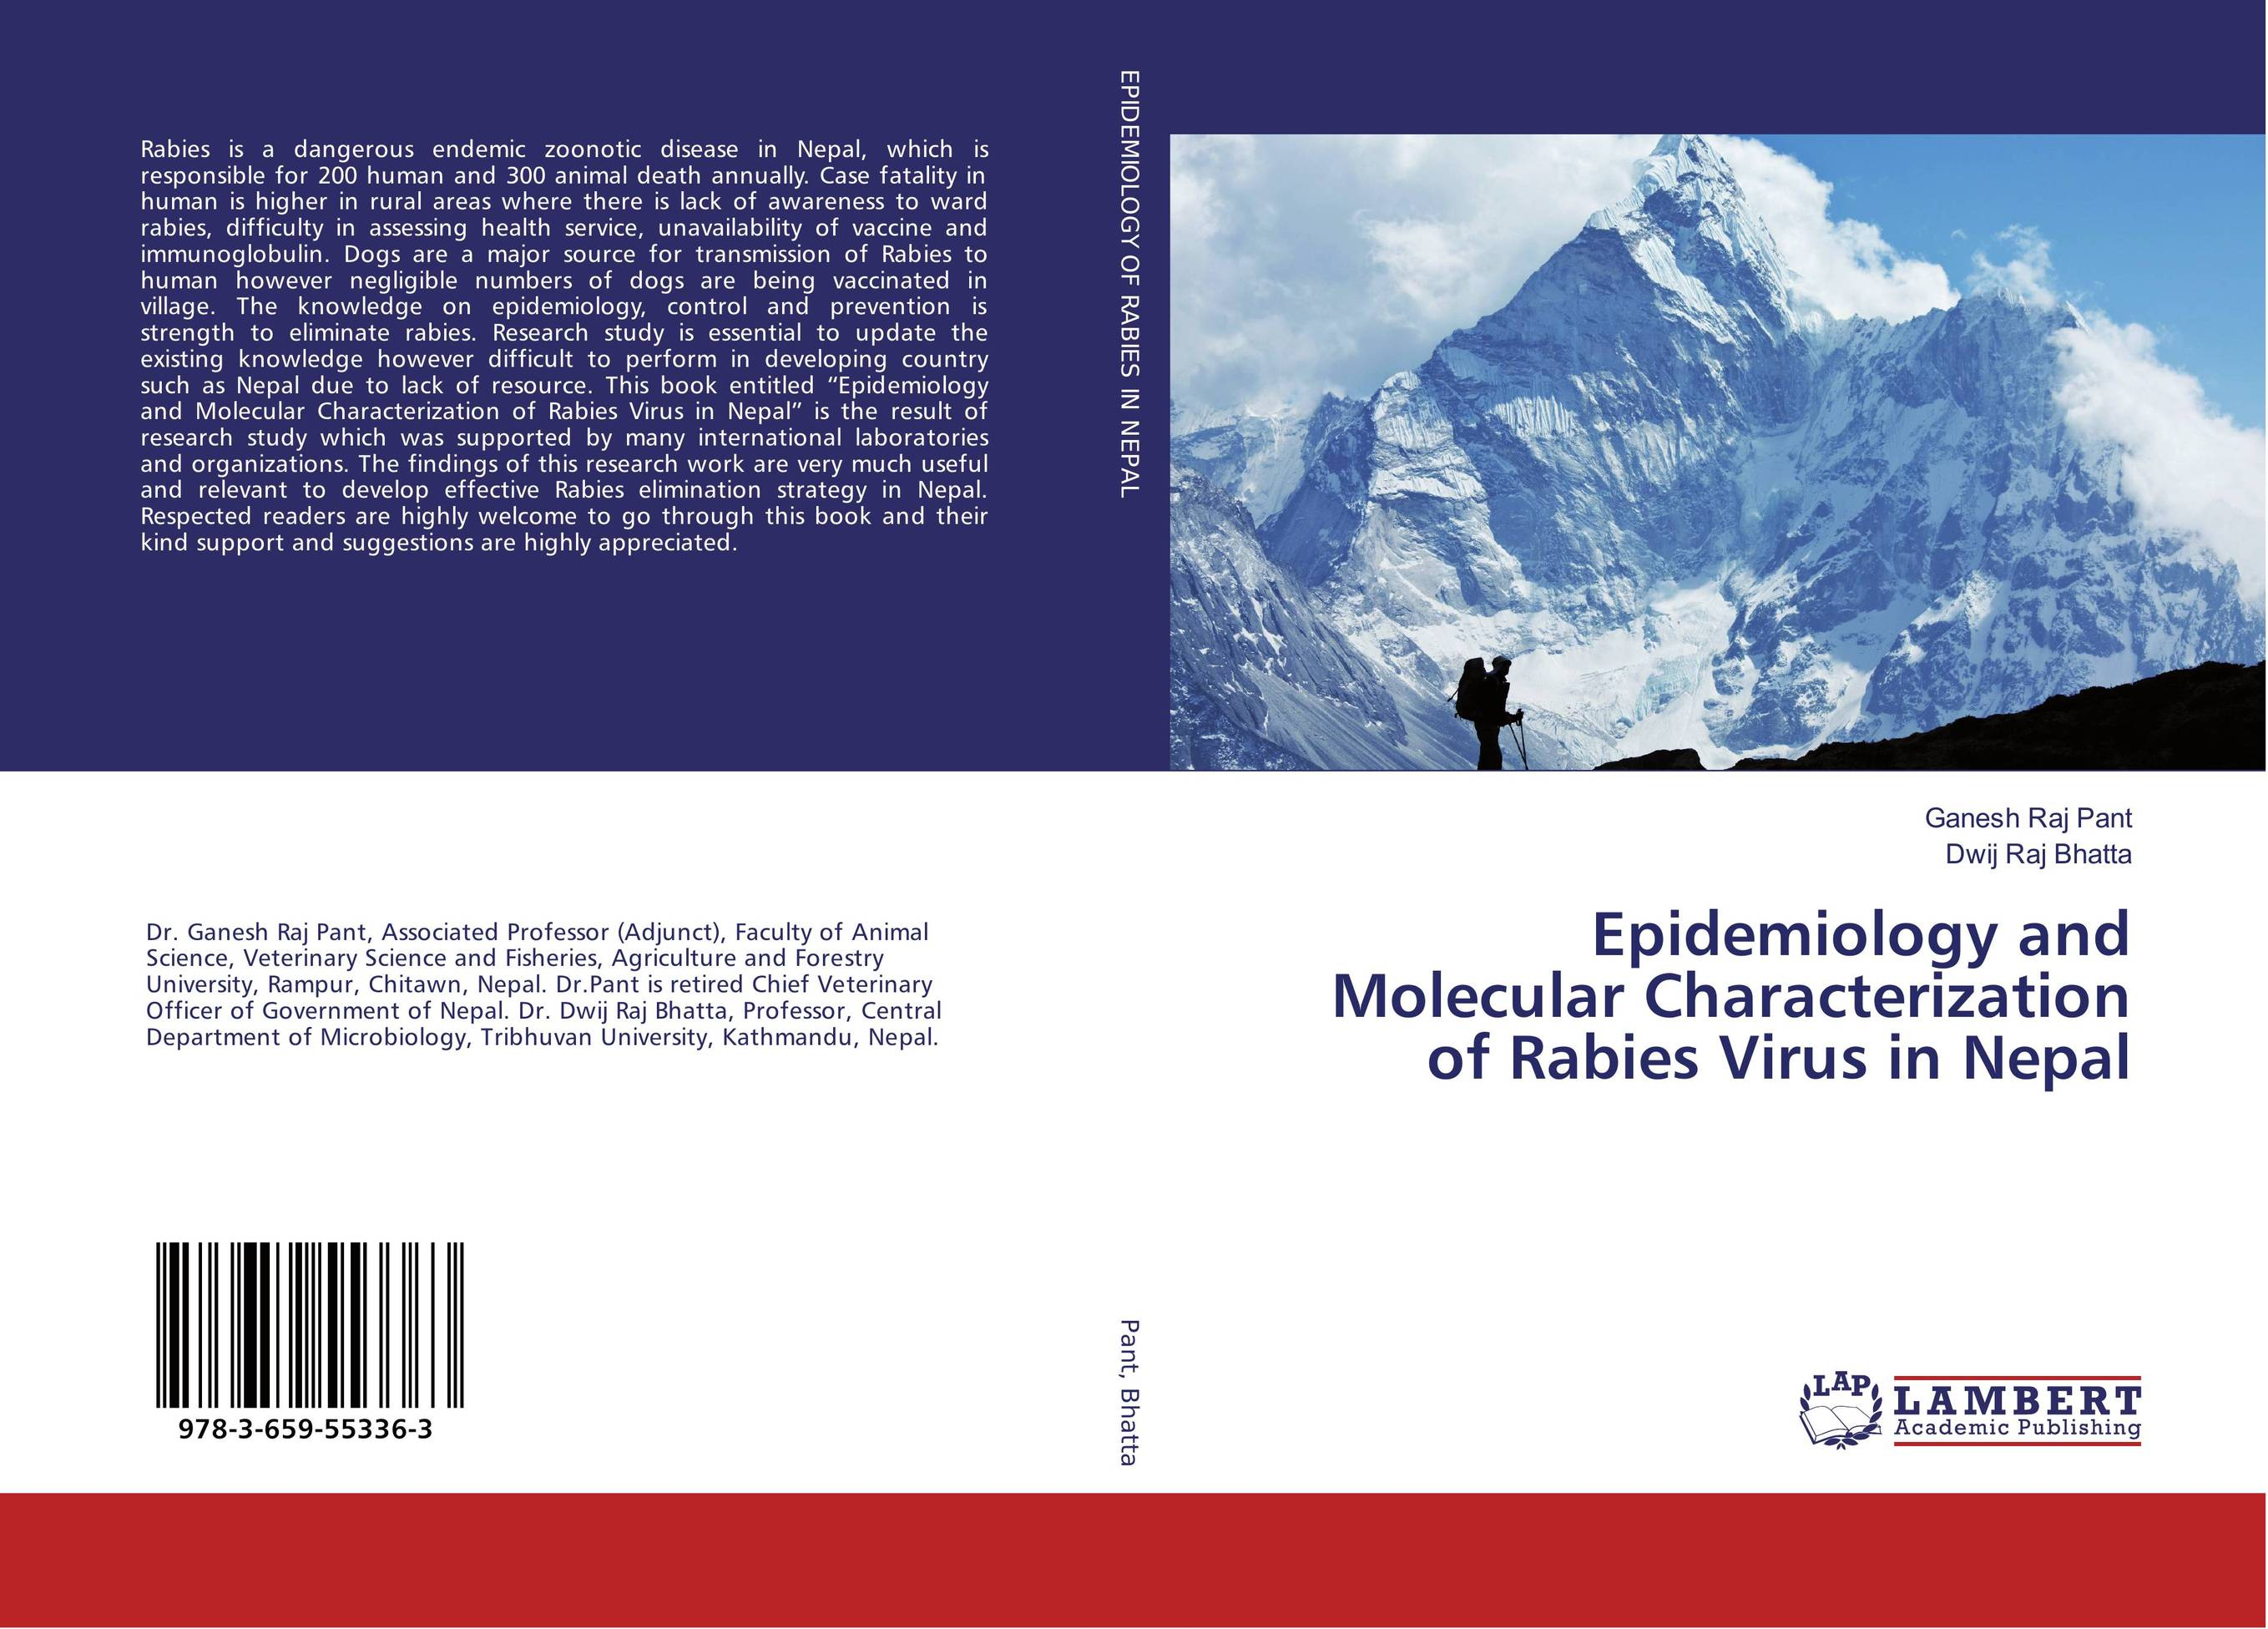 Epidemiology and Molecular Characterization of Rabies Virus in Nepal epidemiology of melioidosis in sabah